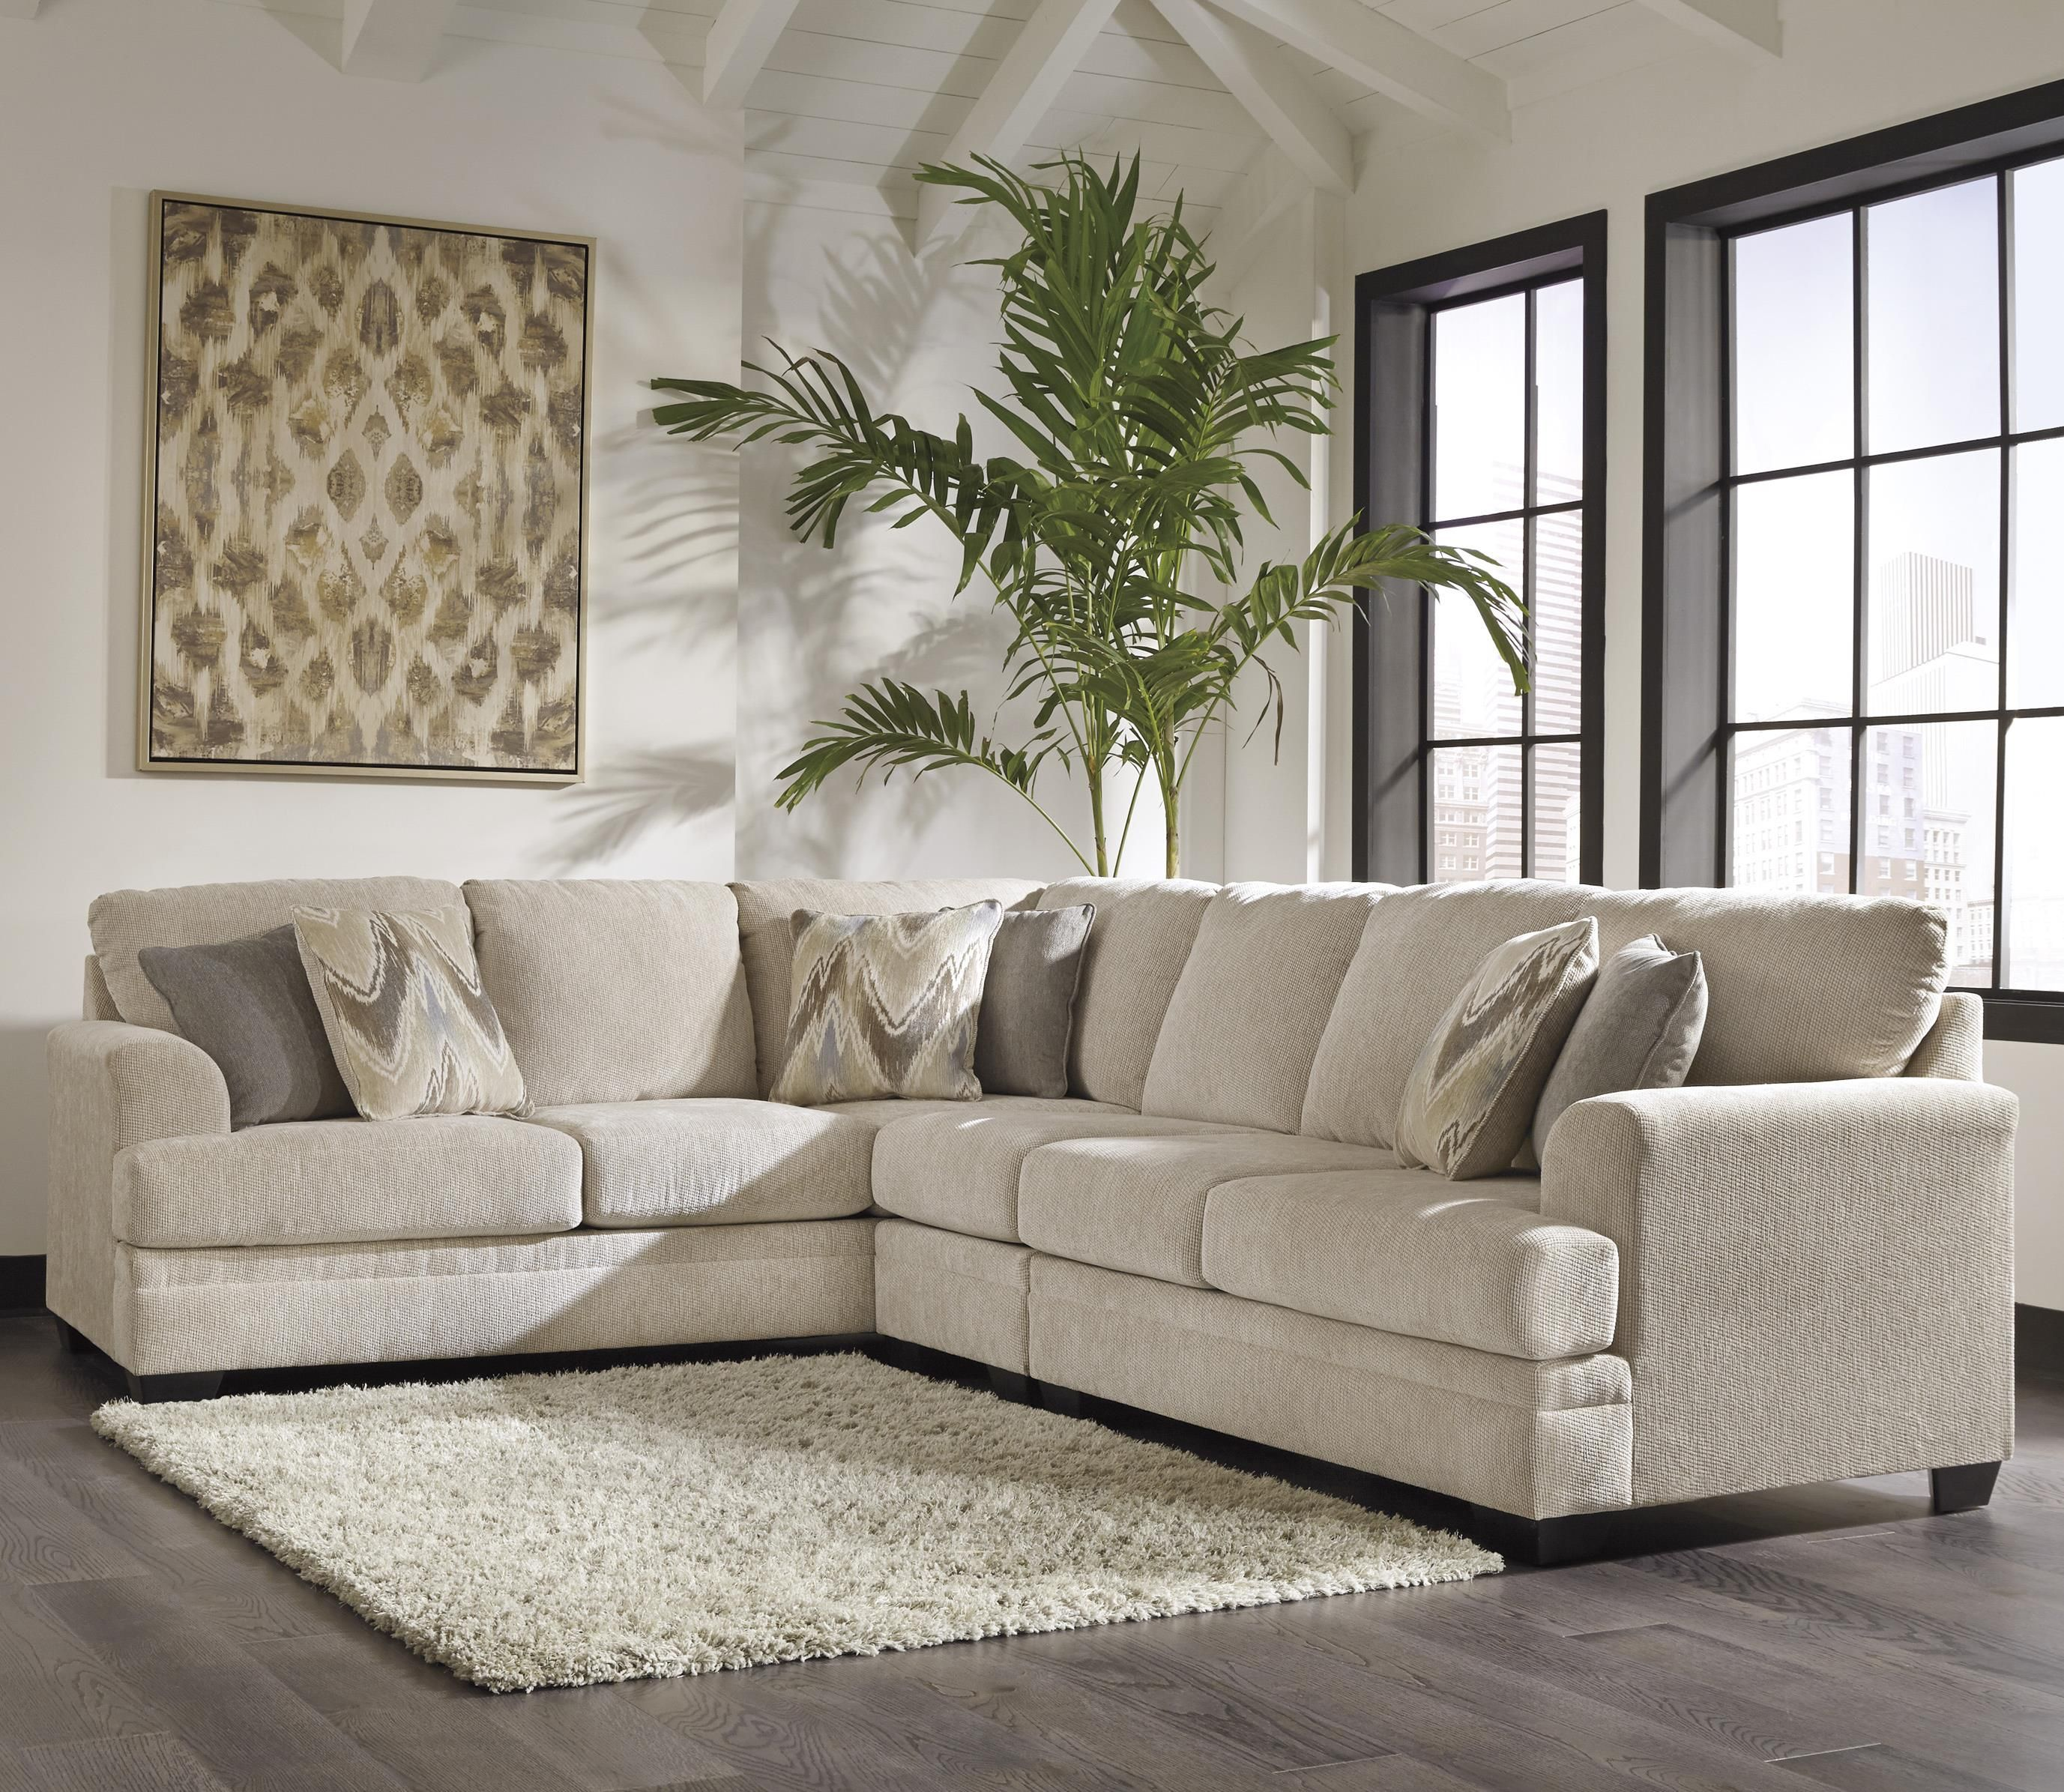 Benchcraft Ameer 3 Piece Sectional Item Number 8180666 46 56